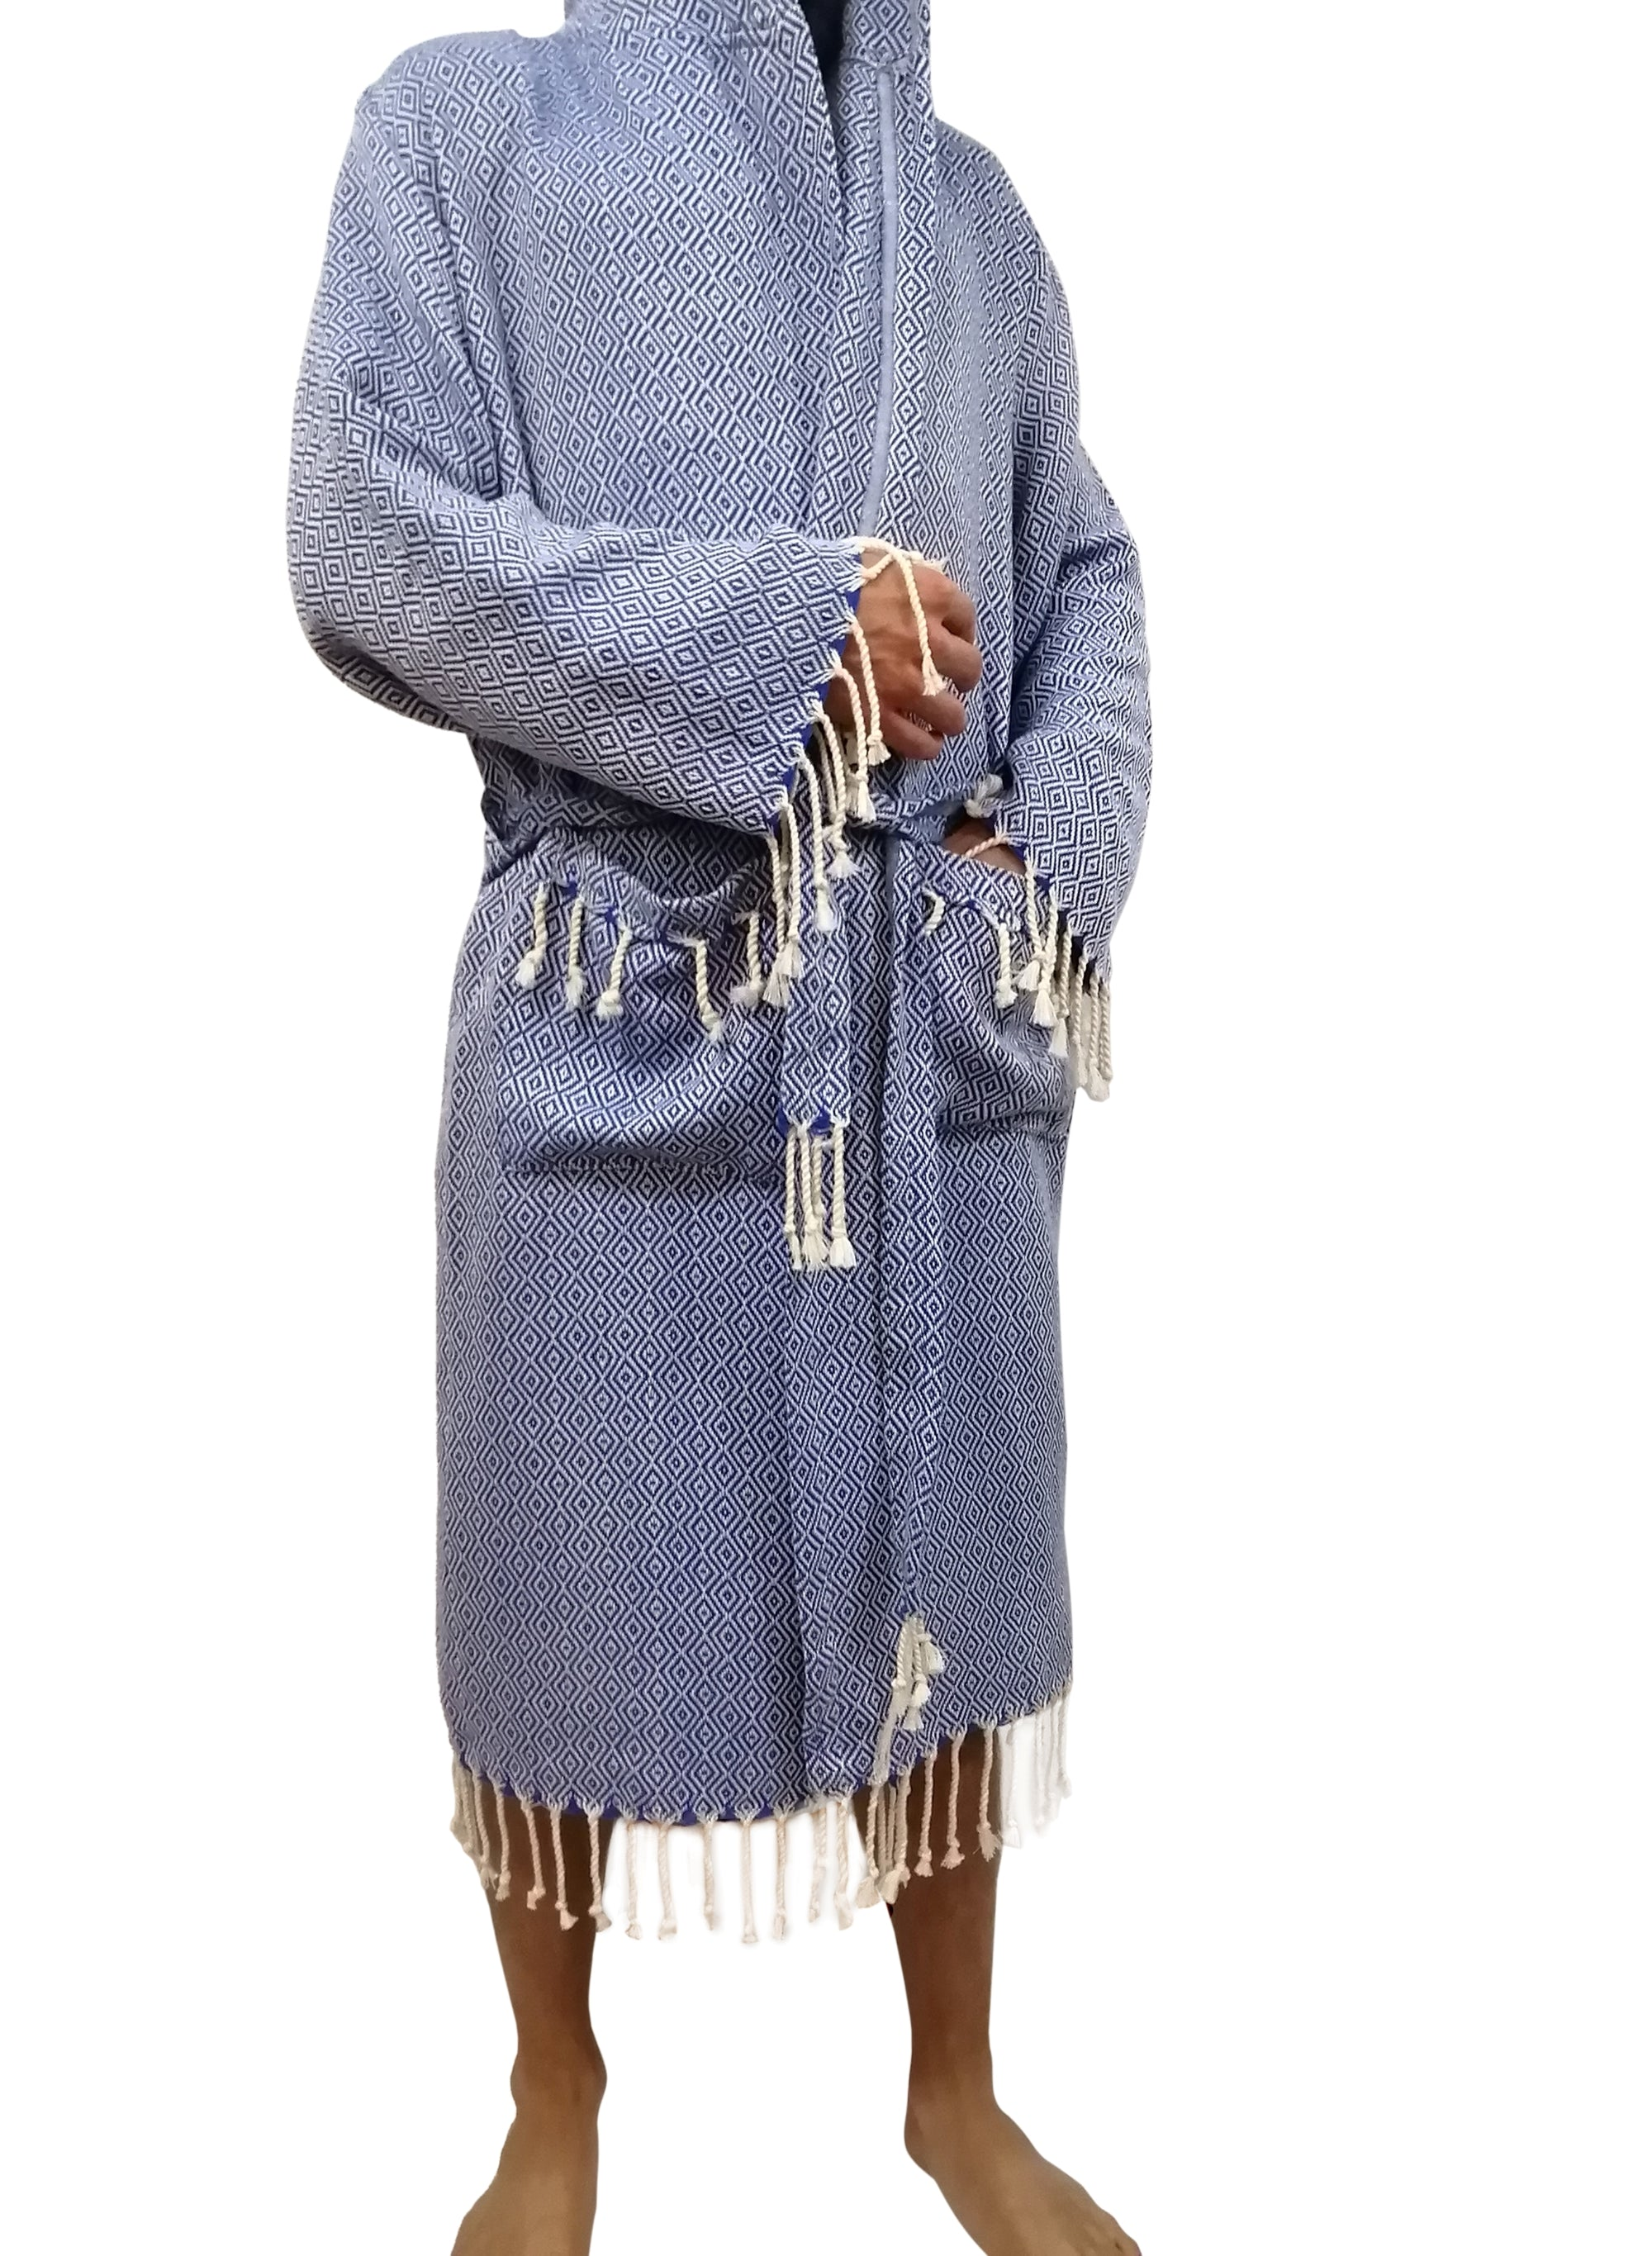 Turkish hammam robe diamond blue made with the finest quality Turkish cotton, super soft, lightweight Turkish towel robes, Perfect for drying off and staying warm, superior absorbency.it is with diamond pattern.